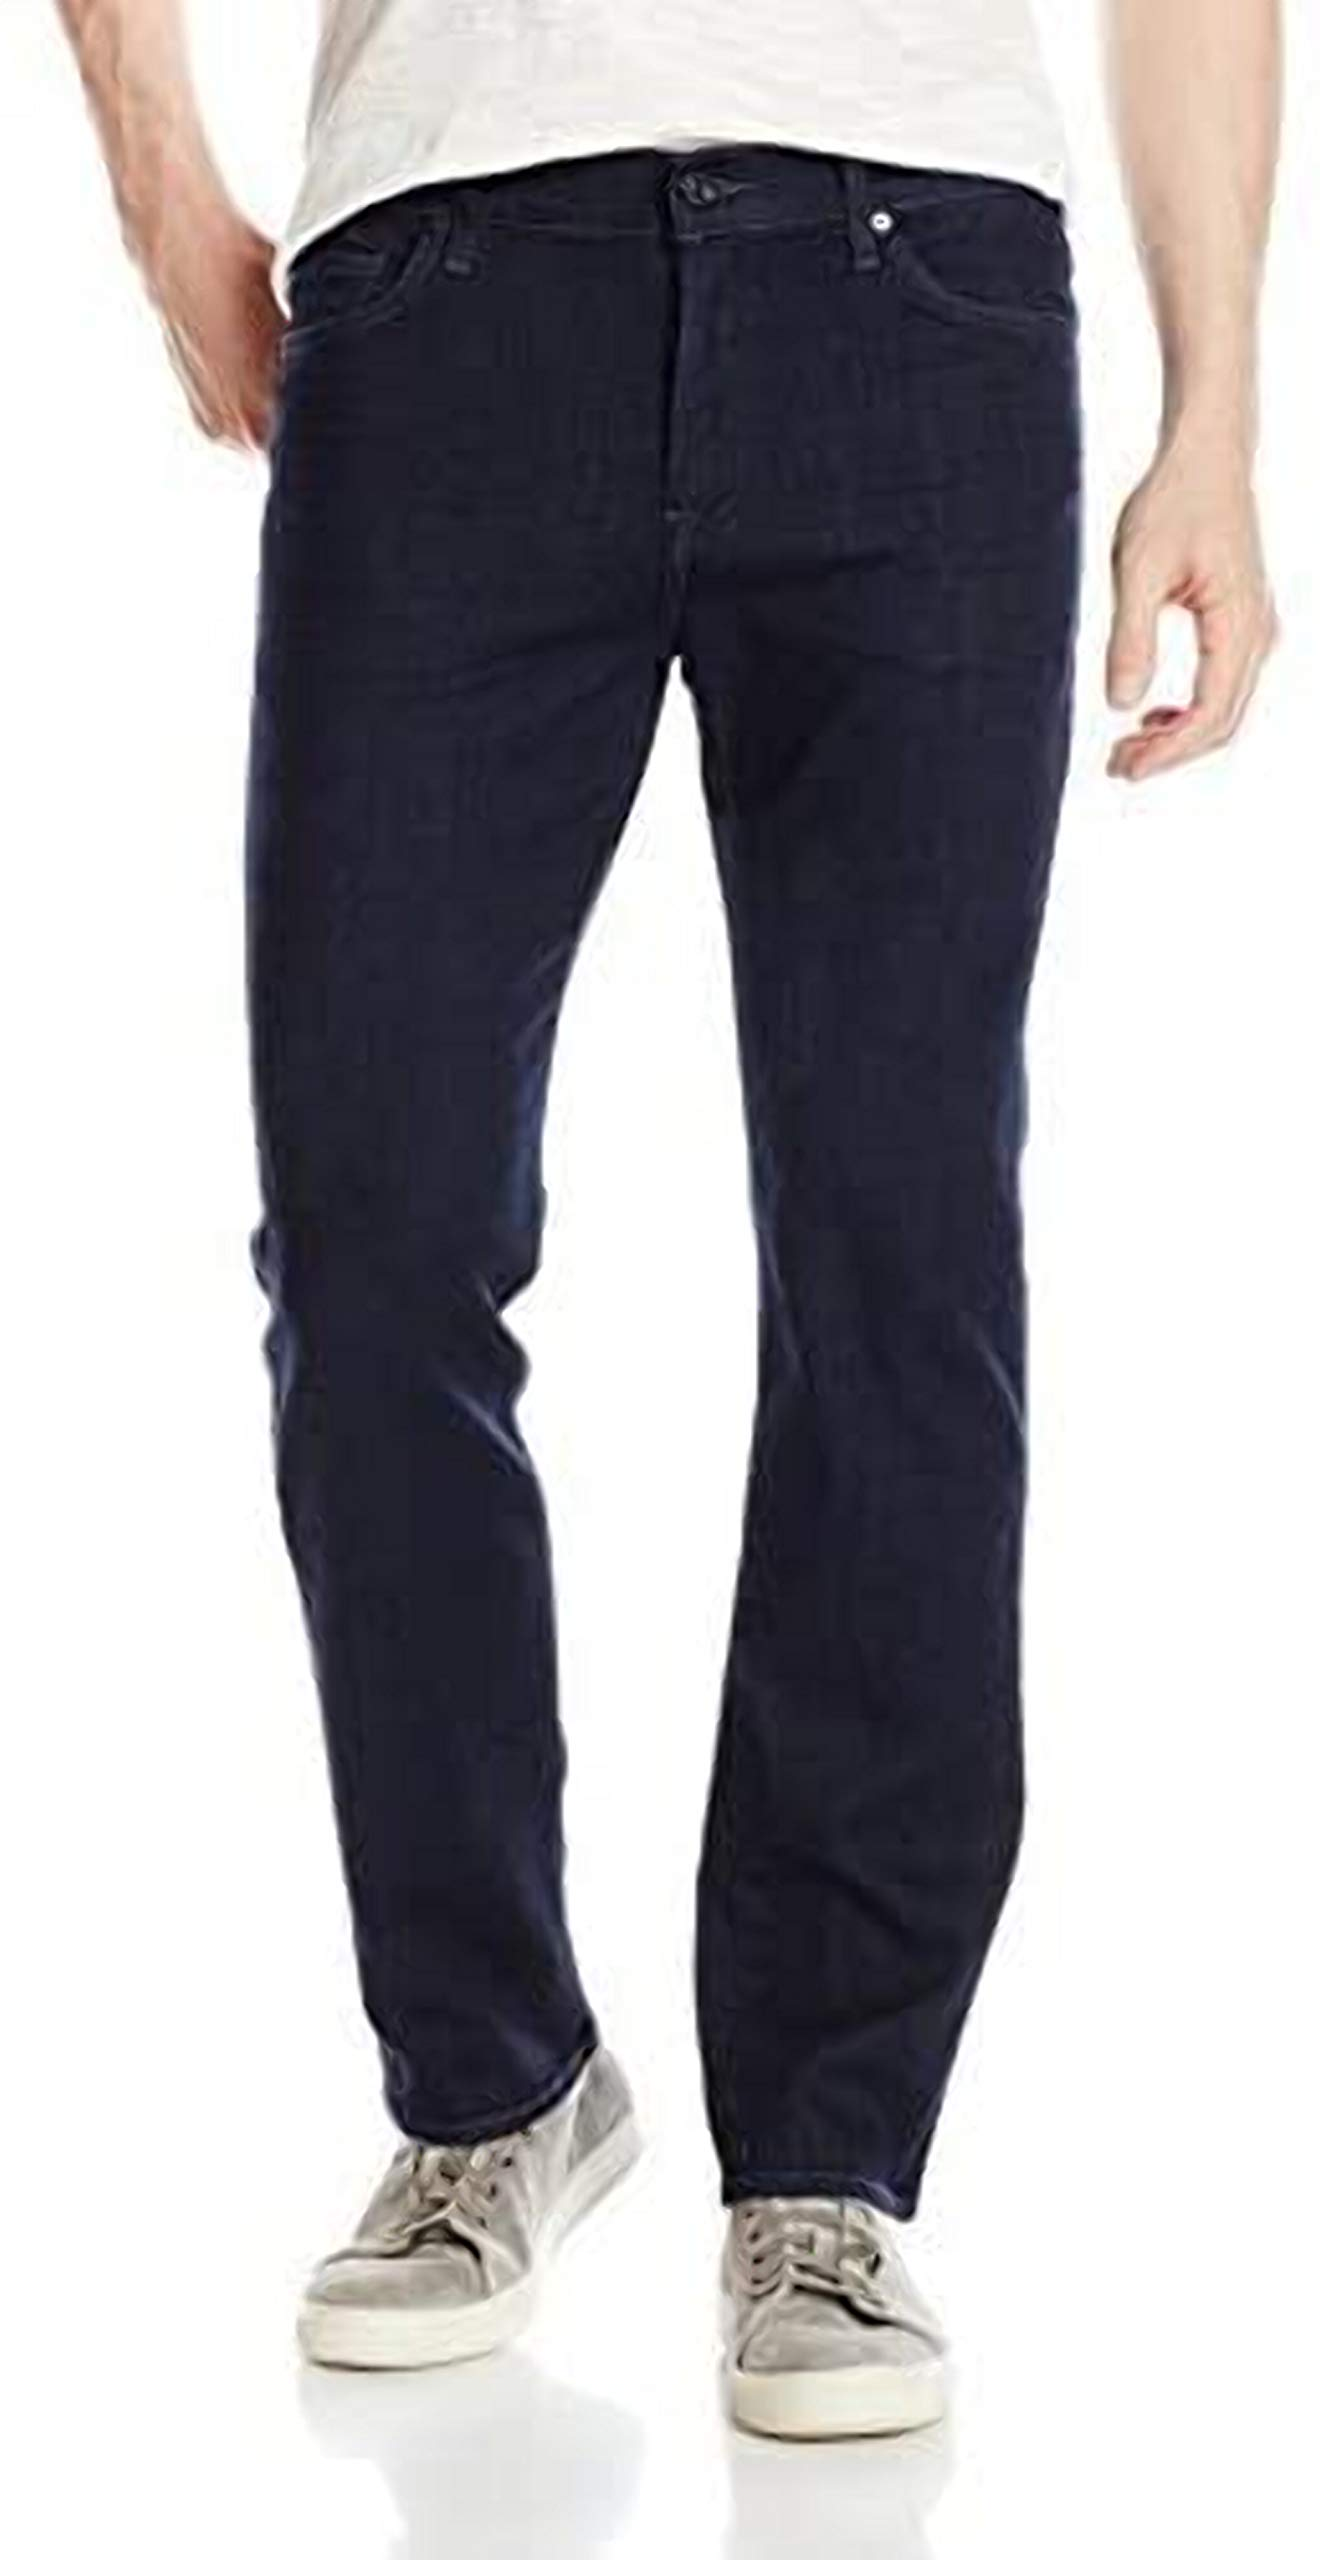 7 For All Mankind Men's Jeans Slim Fit Straight Leg Pants